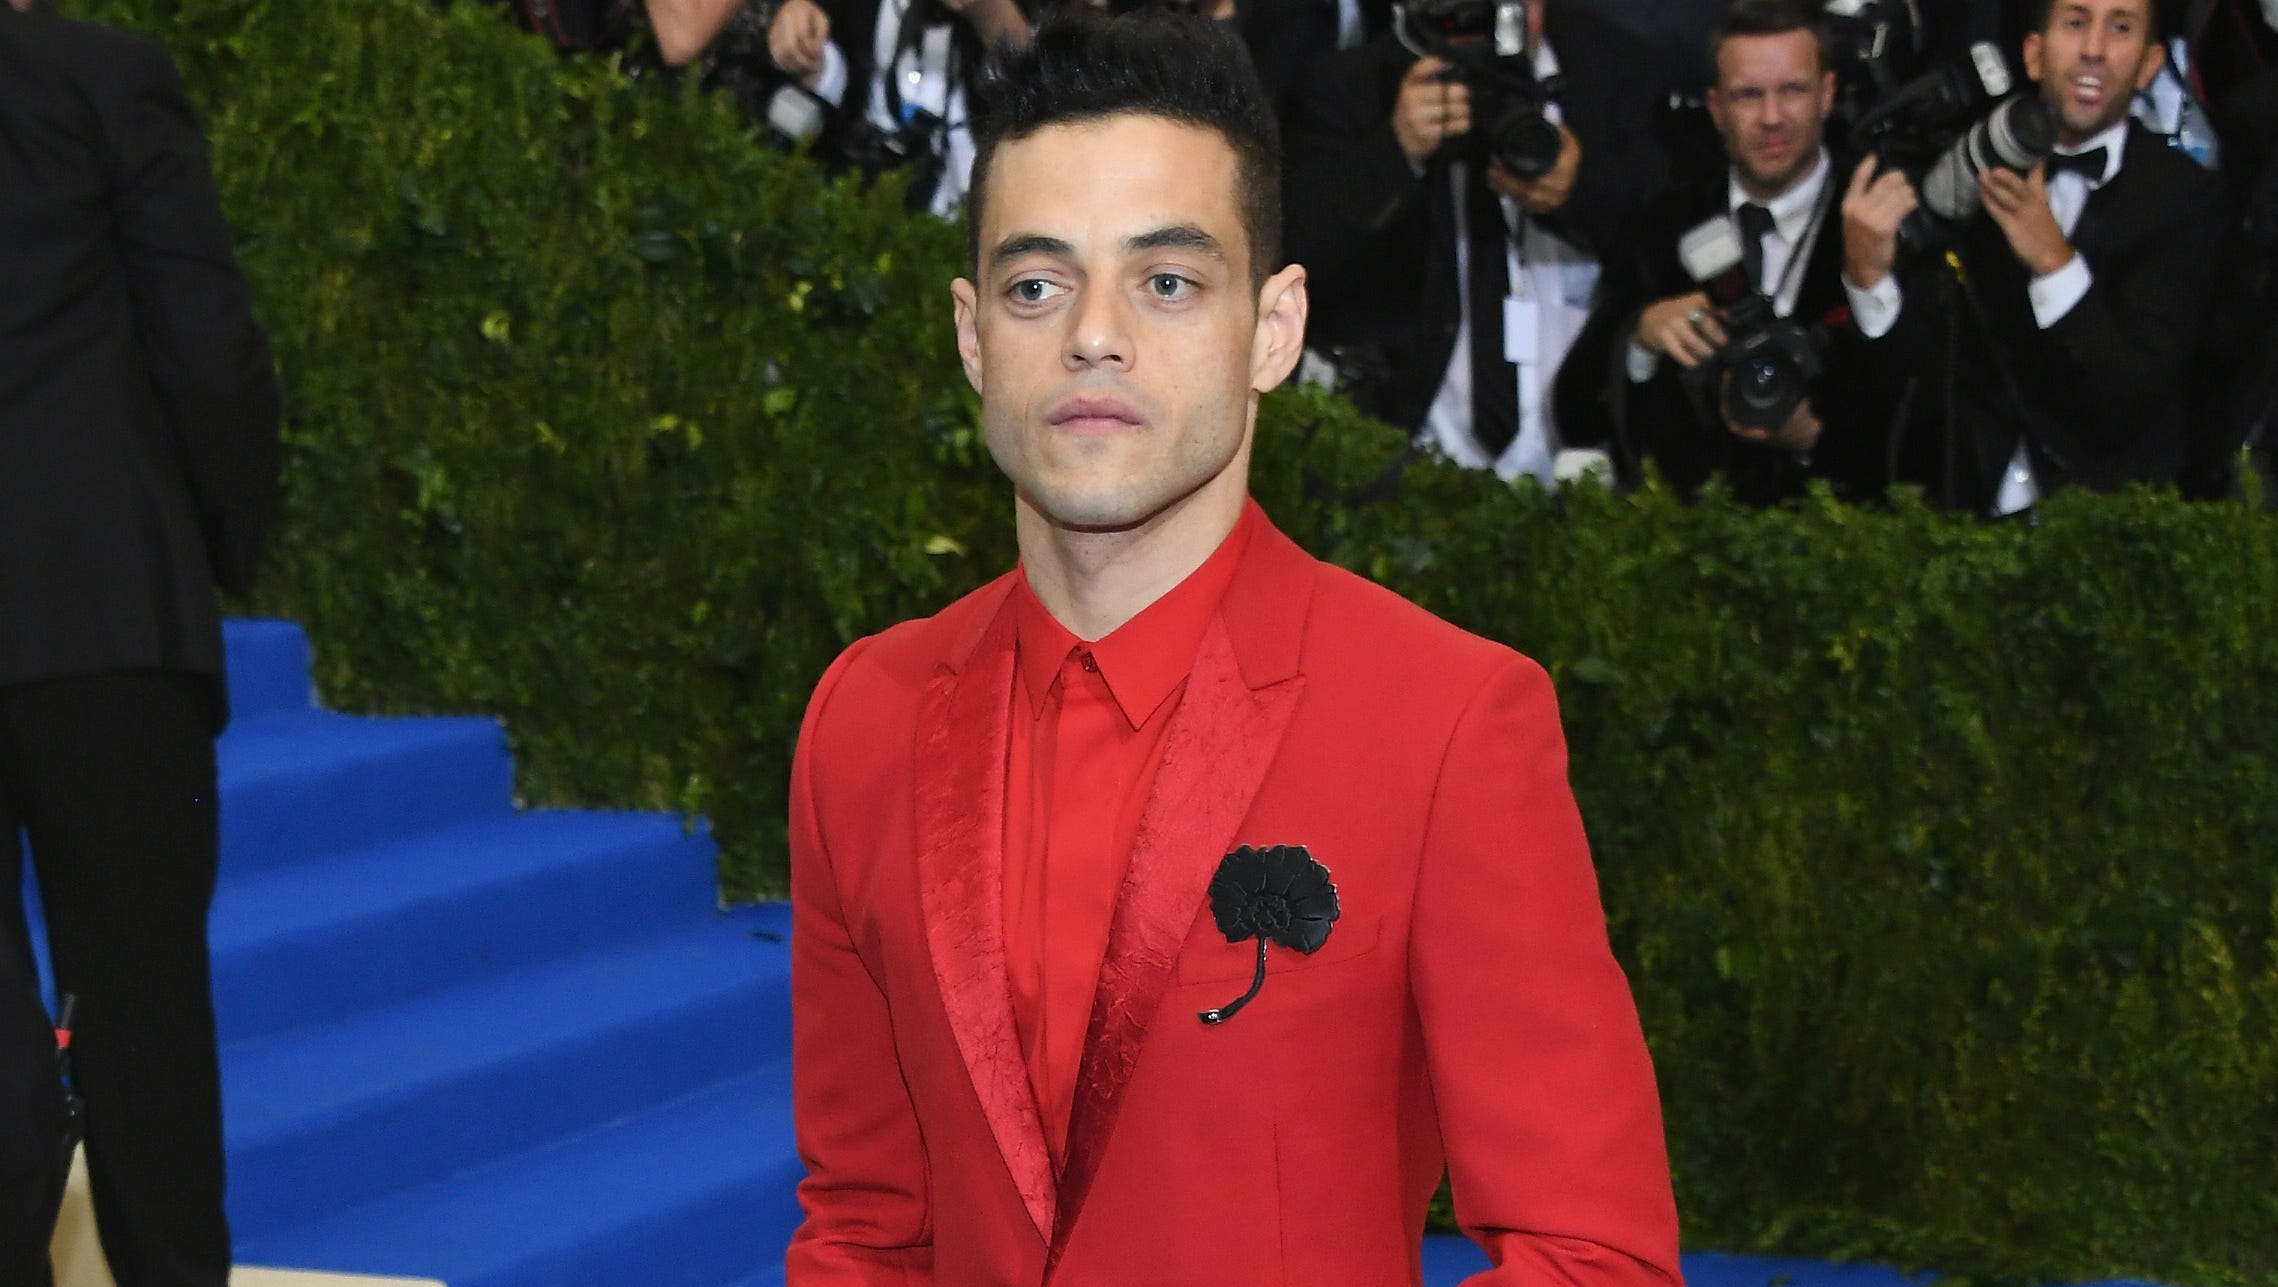 Stars go for bold, barmy and handsome looks at the Met Gala